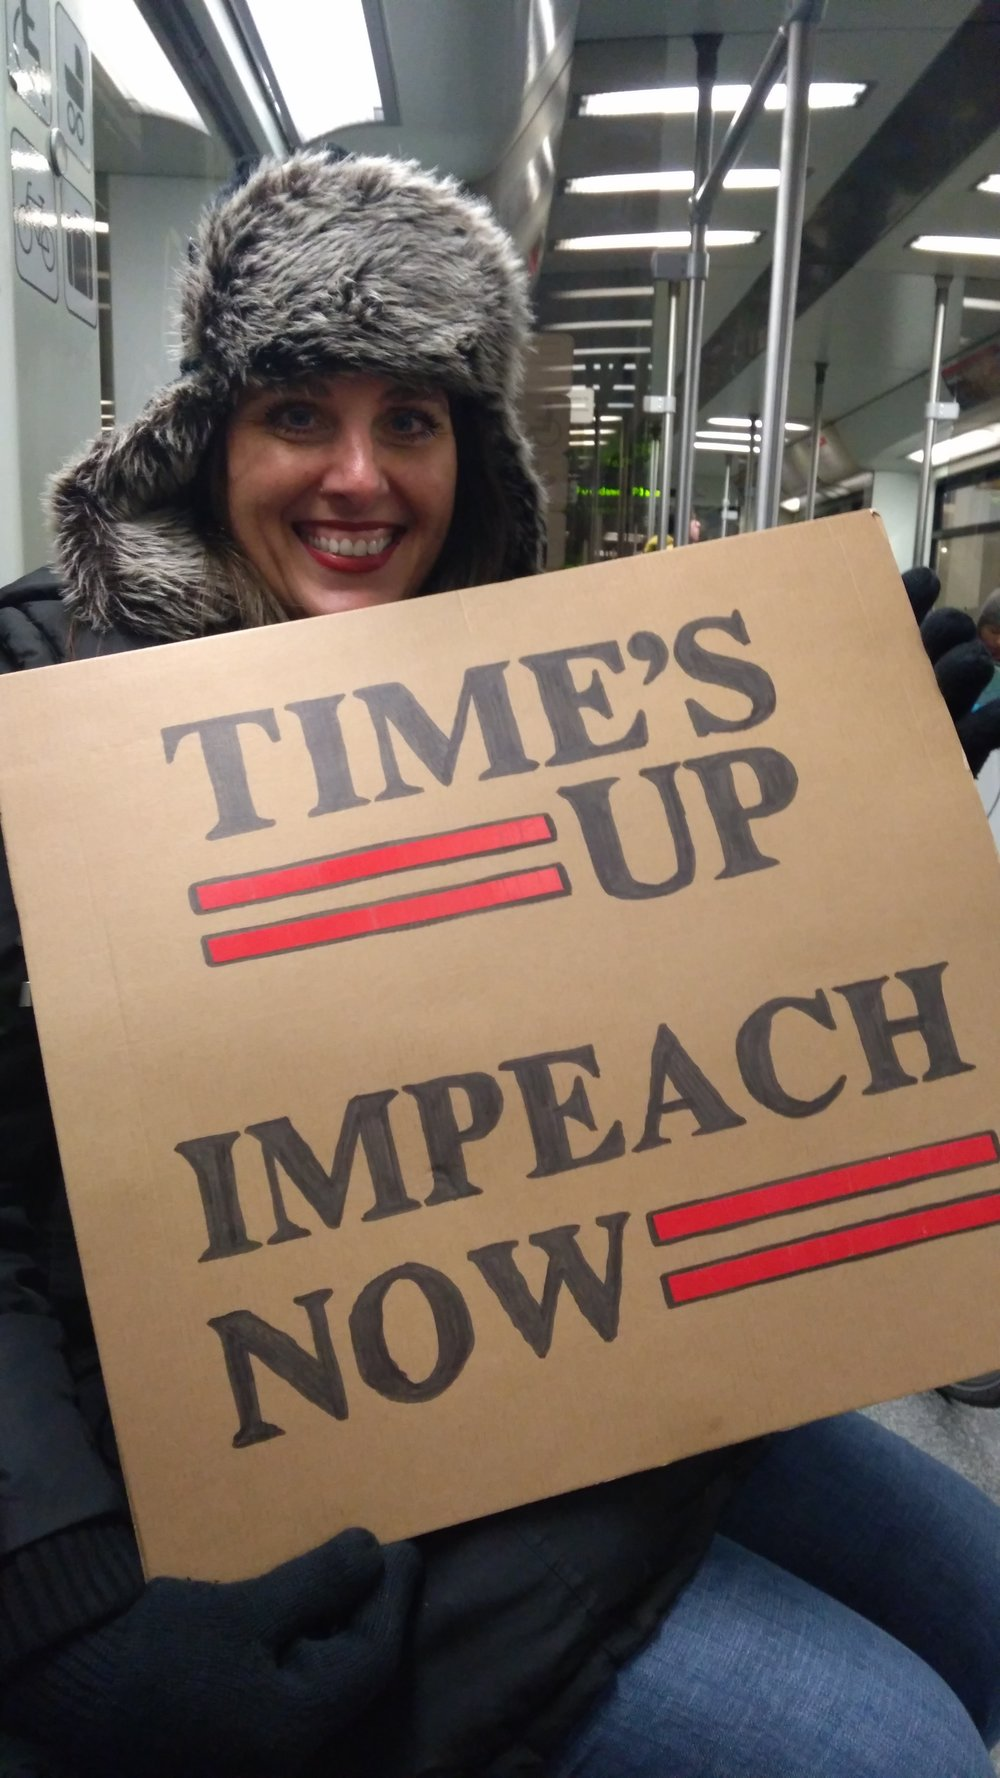 Laura from Chicago protests Trump and hopes for his impeachment